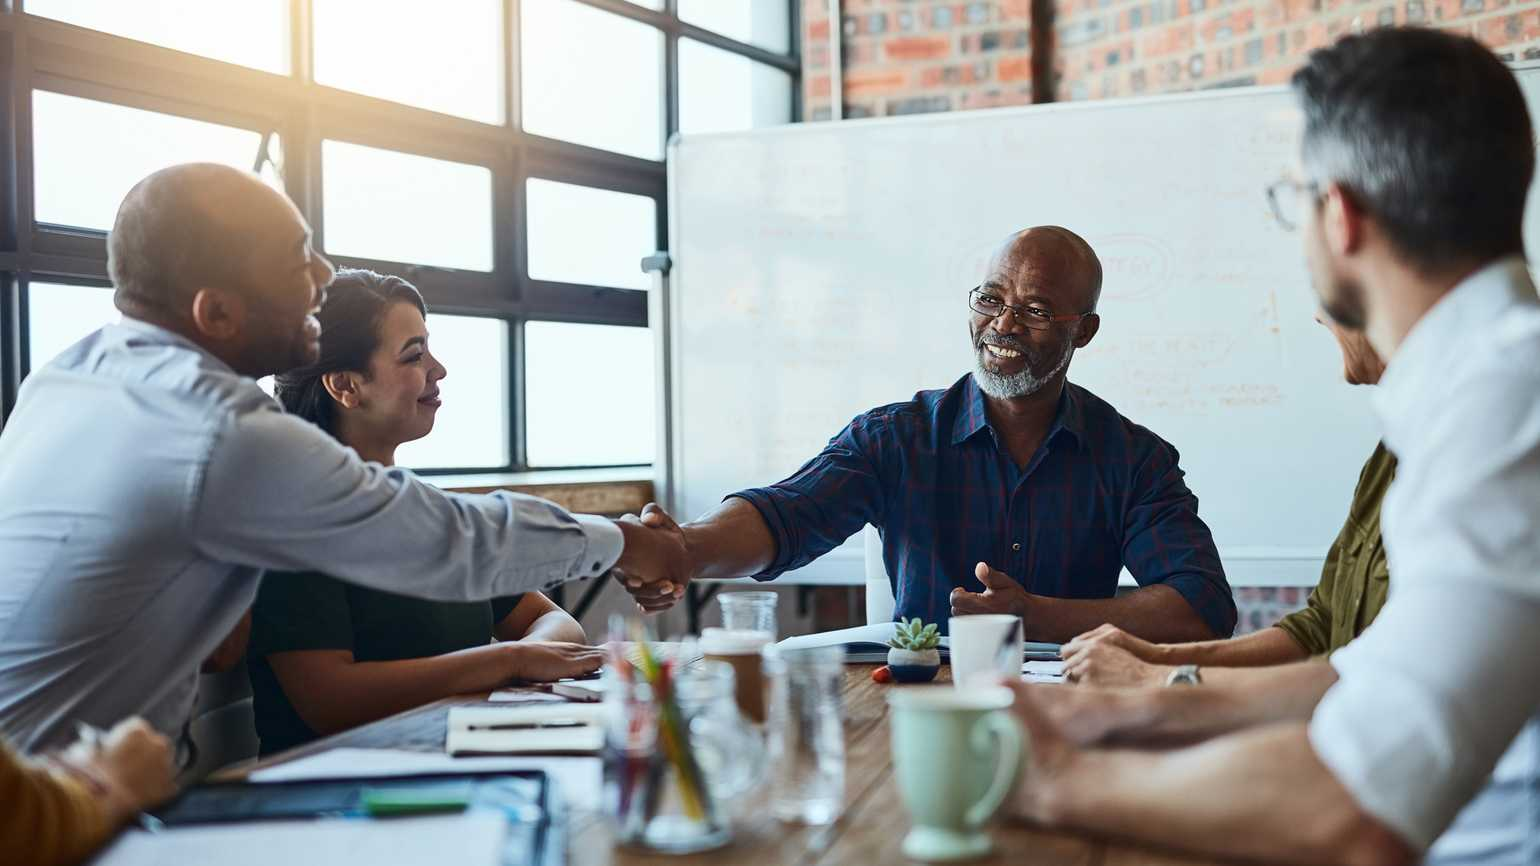 A manager shakes hands with one of his employees around a conference table.